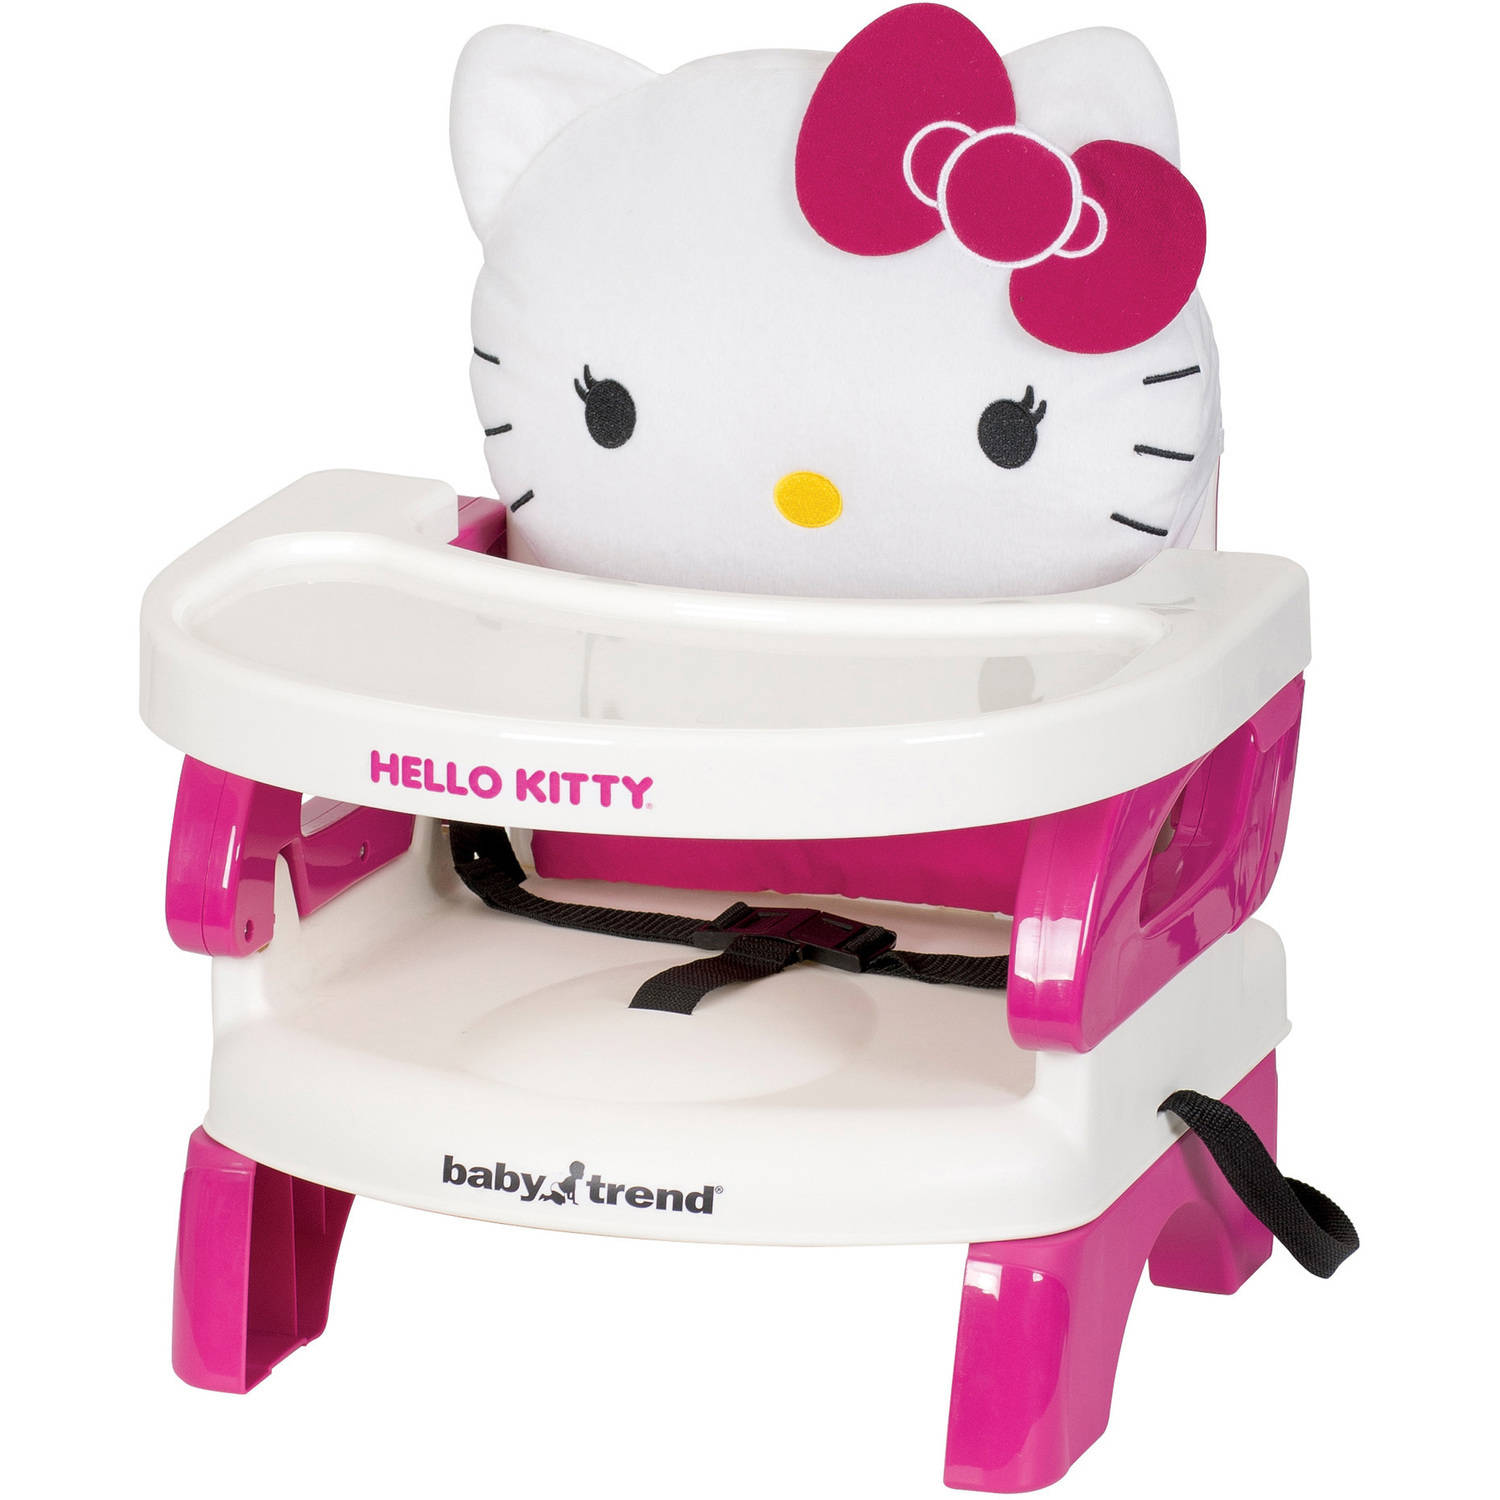 Baby trend high chair pink - Baby Trend High Chair Pink